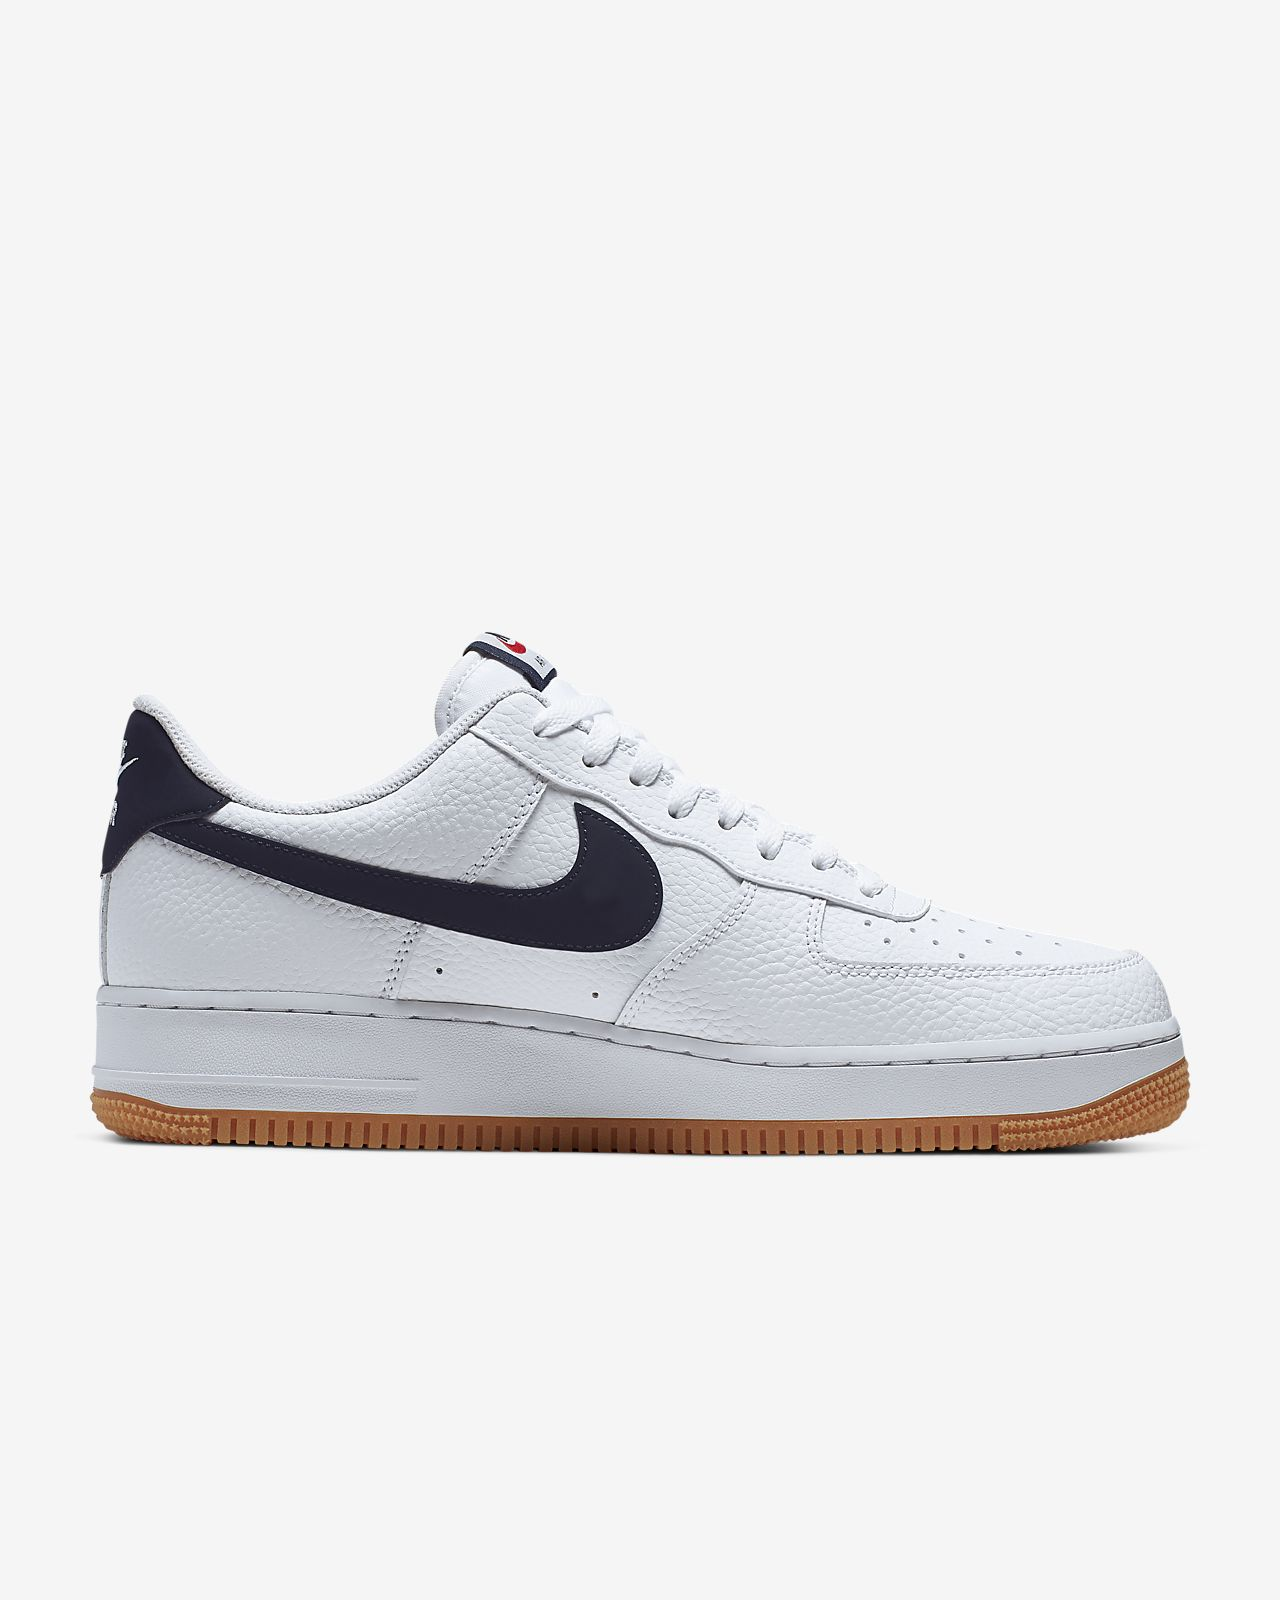 Pour Force 1 Air Nike Homme Chaussure HIWE9YD2